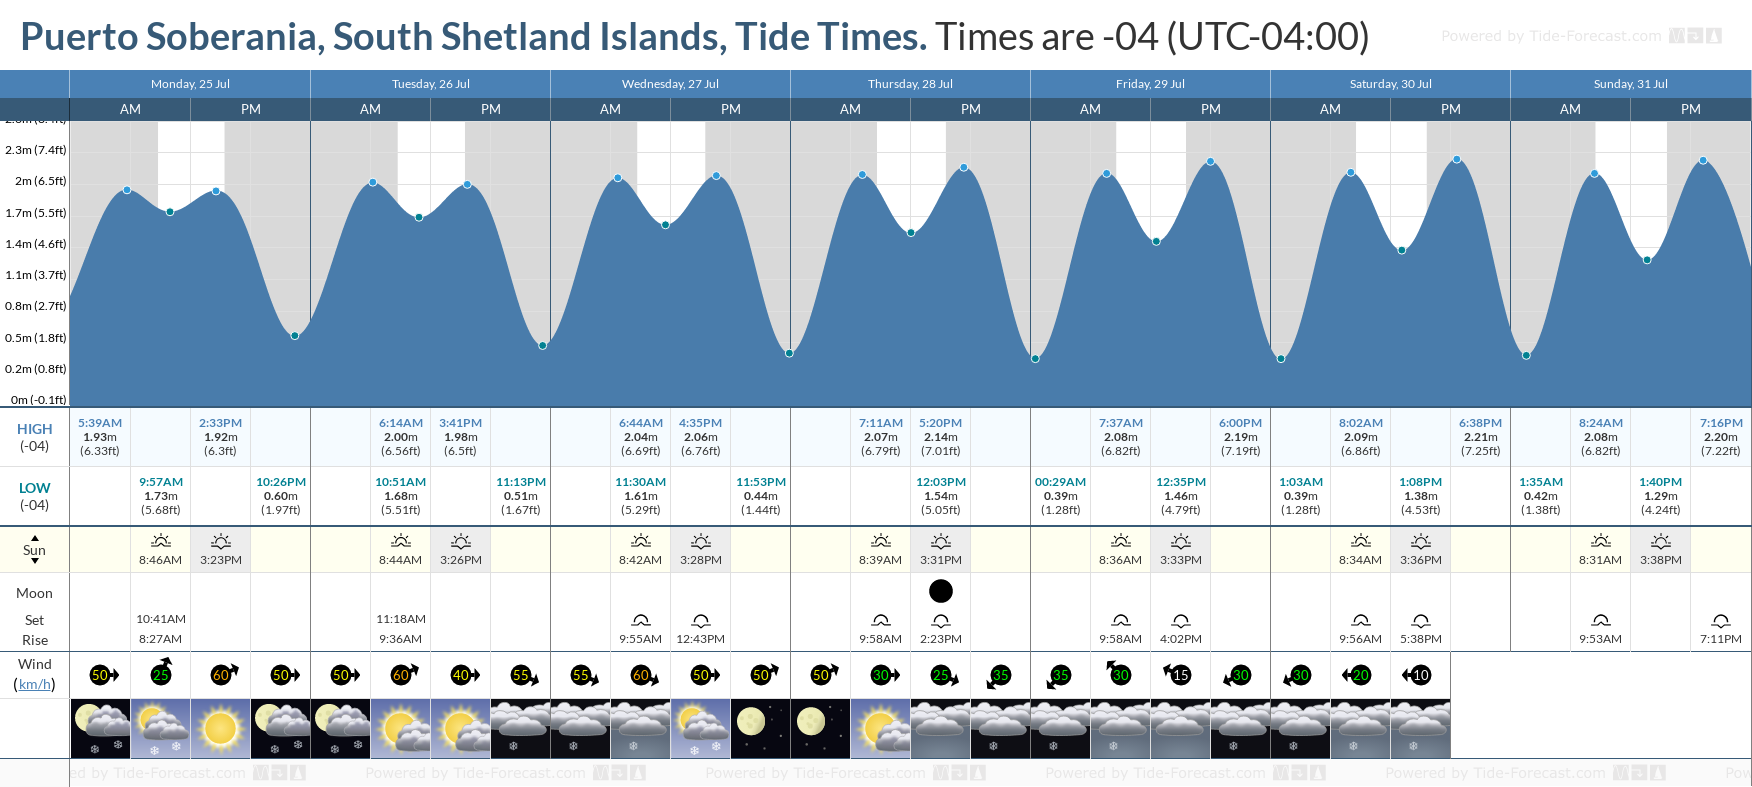 Puerto Soberania, South Shetland Islands Tide Chart including high and low tide tide times for the next 7 days